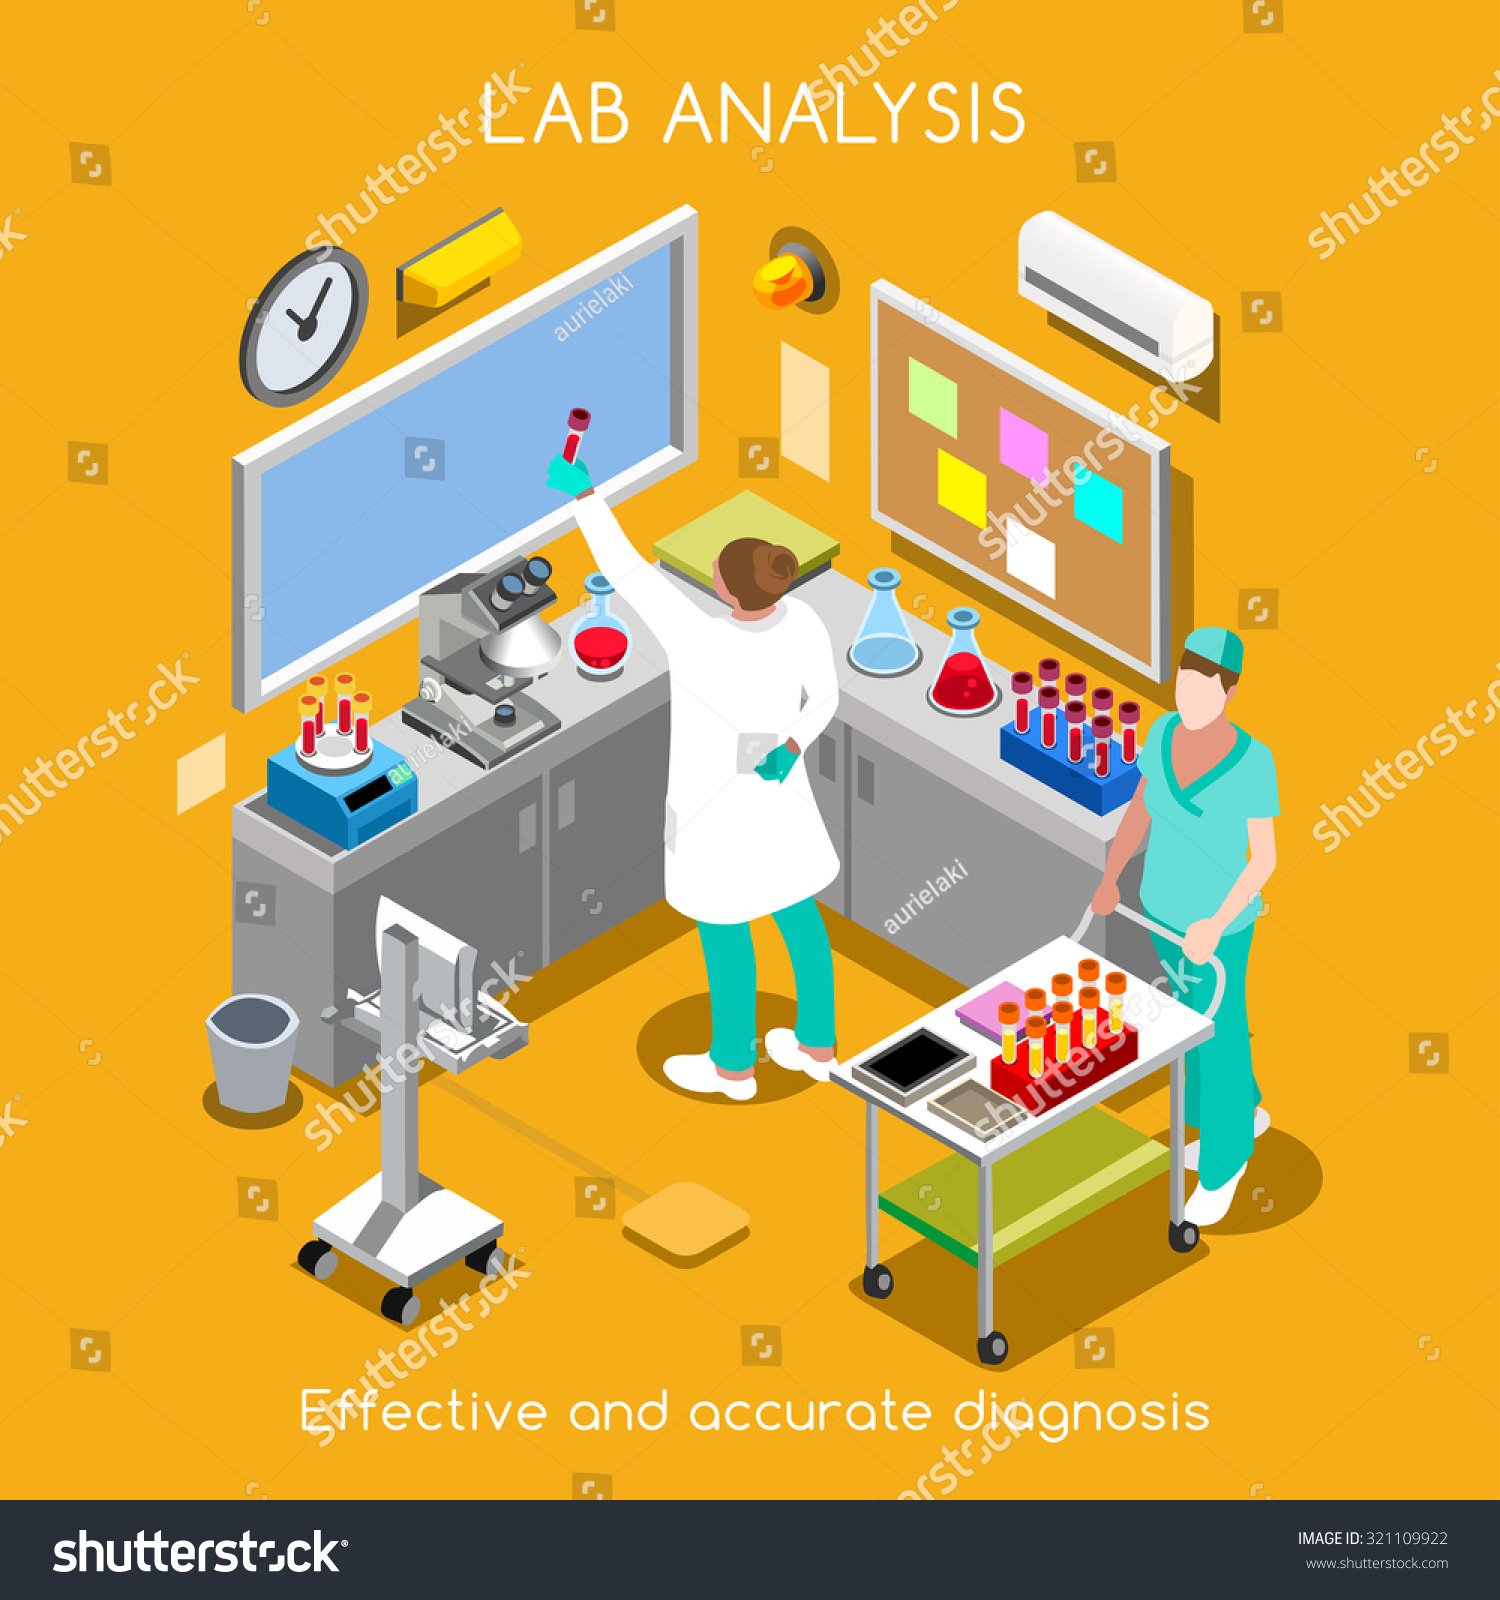 an analysis of the clinical chemistry test in medicine Ejifcc2016vol27no1pp005-014 page 6 jillian r tate, gary l myers harmonization of clinical laboratory test results the contrary, the assumption made by patients.